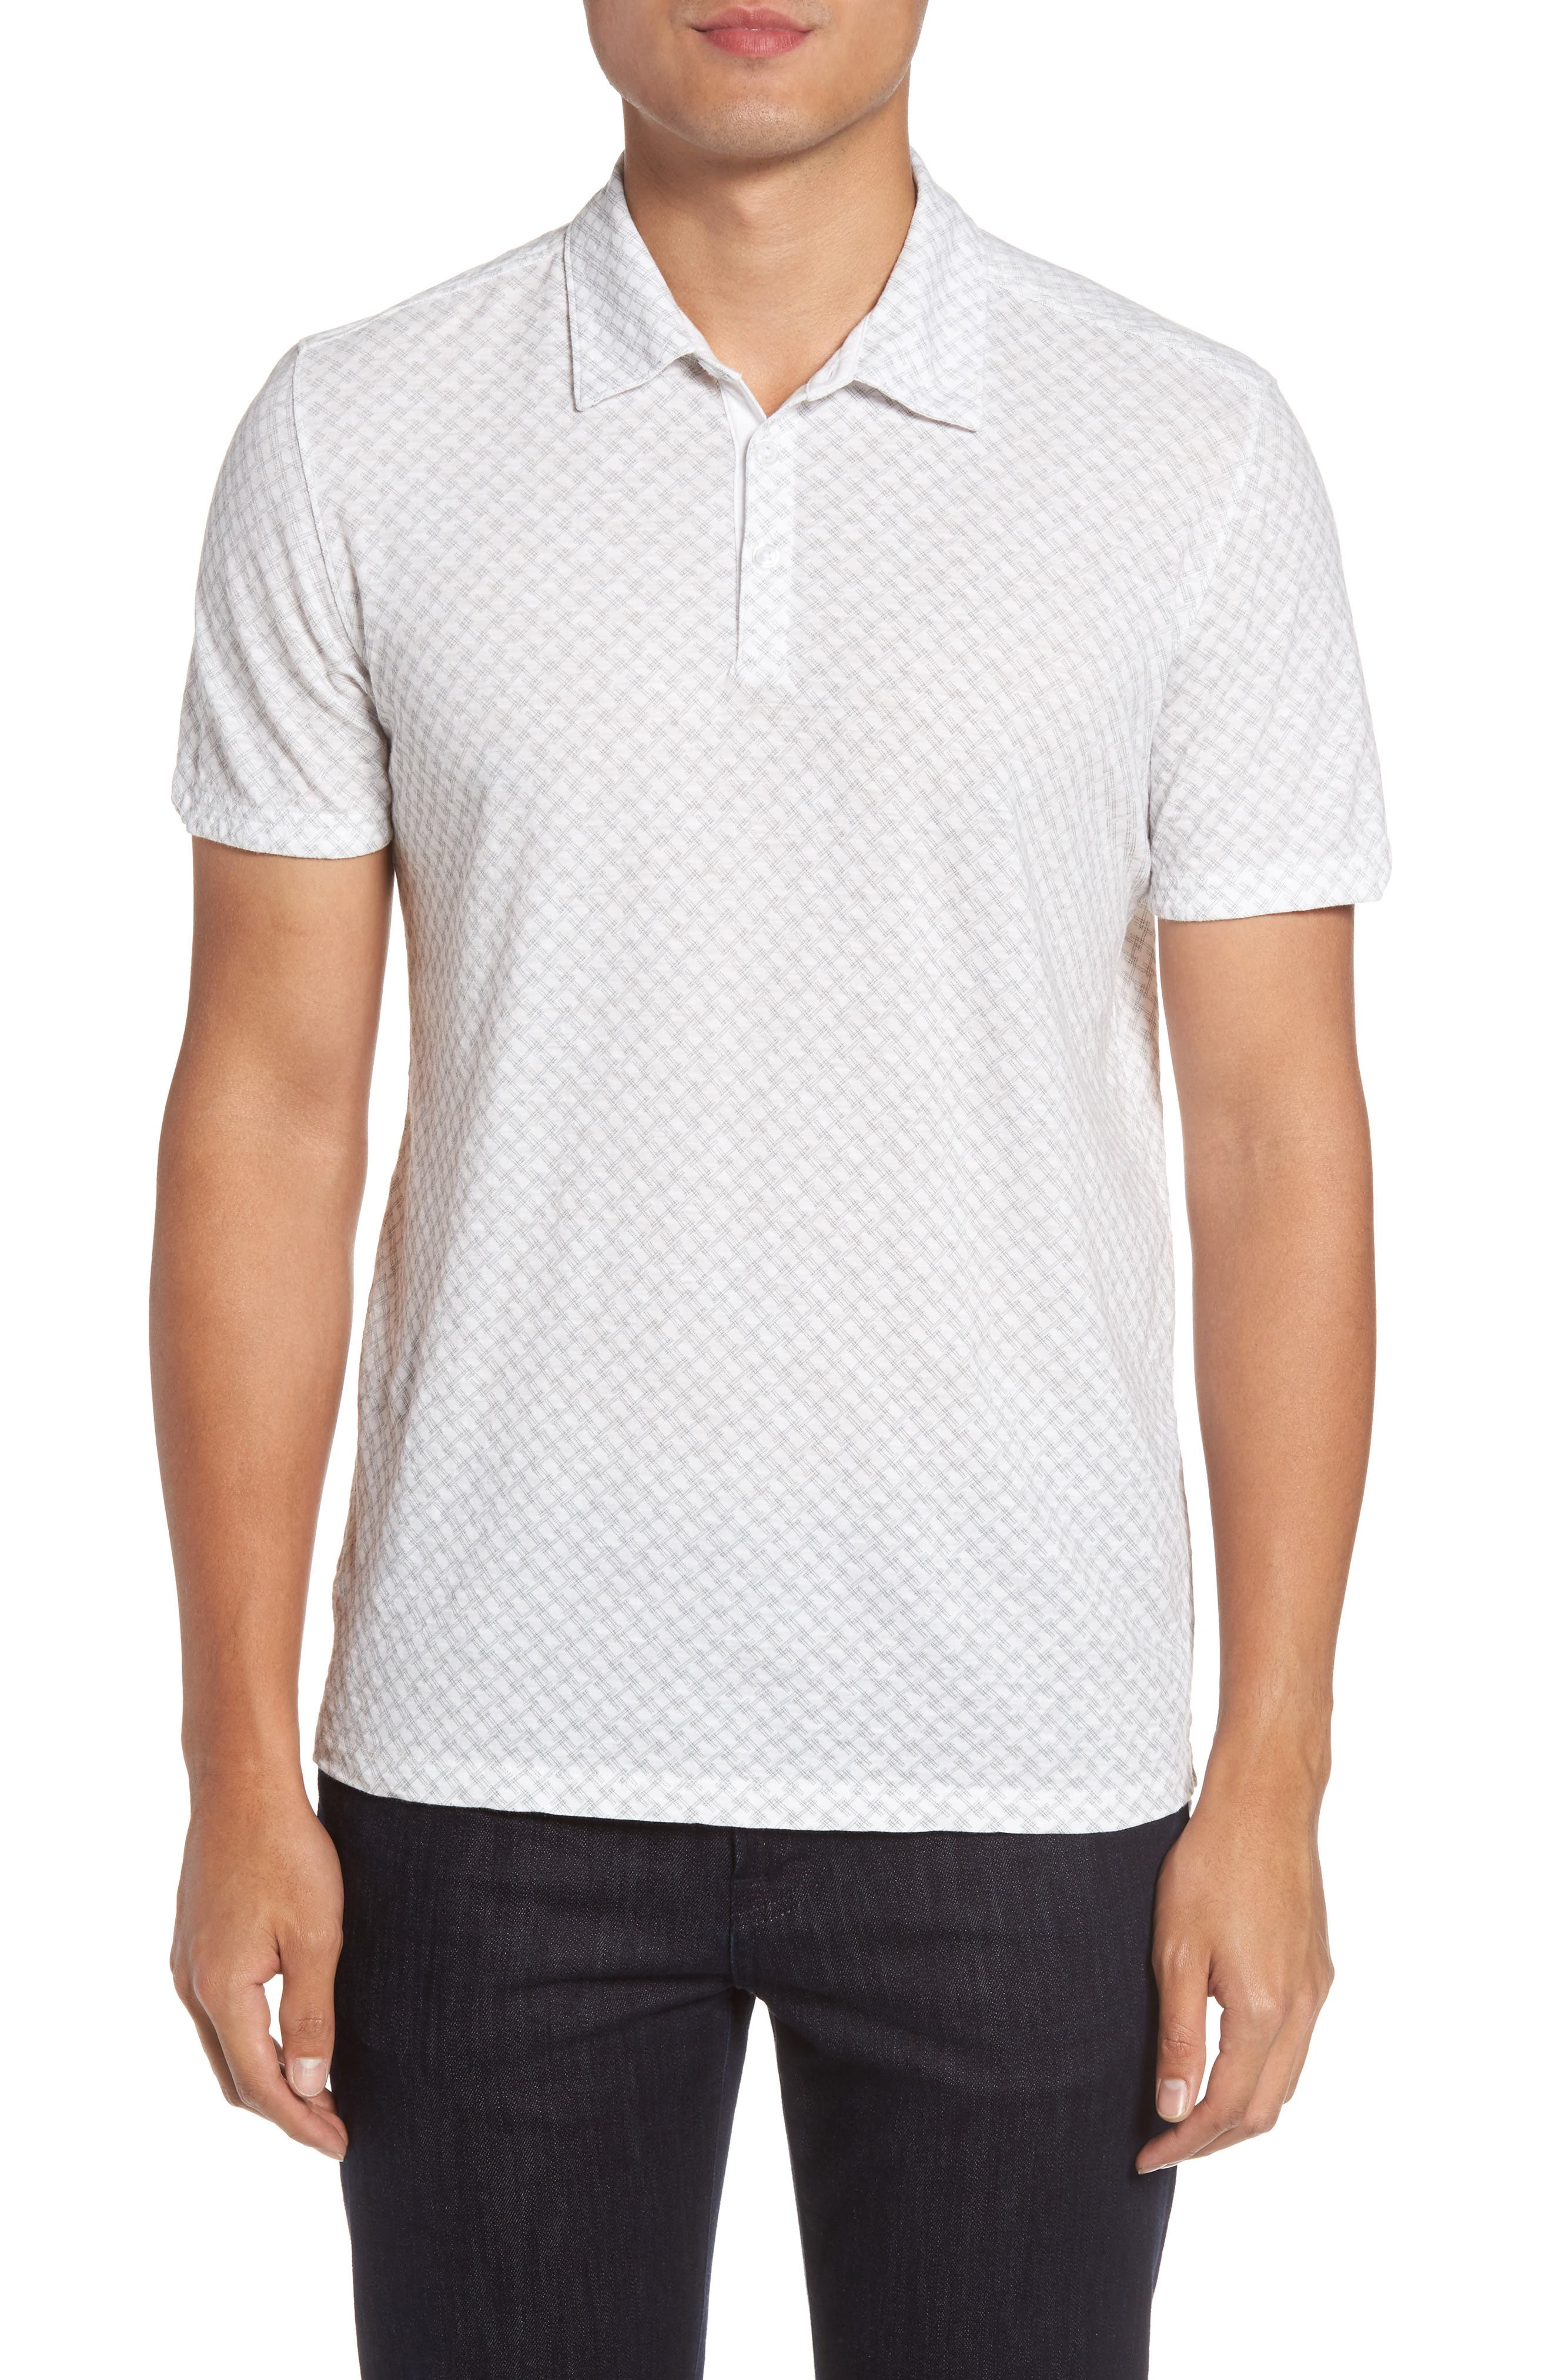 Alternate Image 1 Selected - Zachary Prell Mays Print Jersey Polo